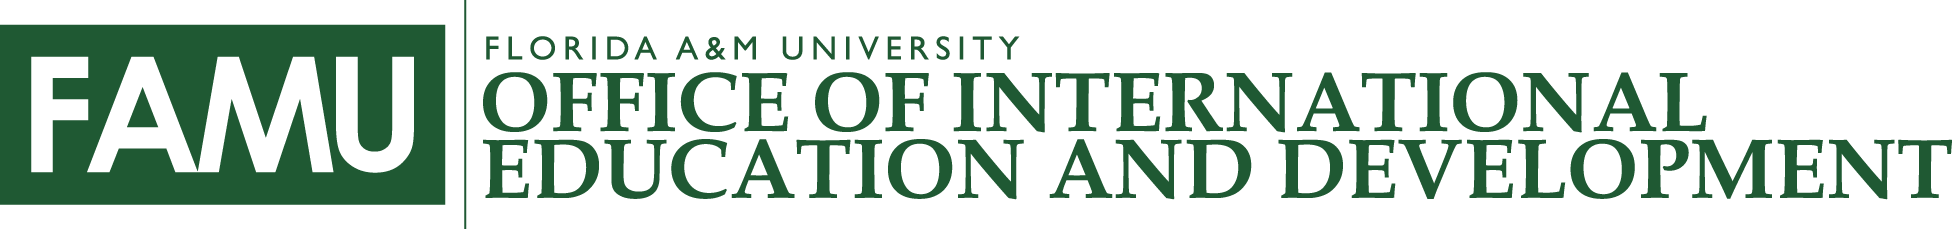 Office of International Education and Development - Florida A&M University